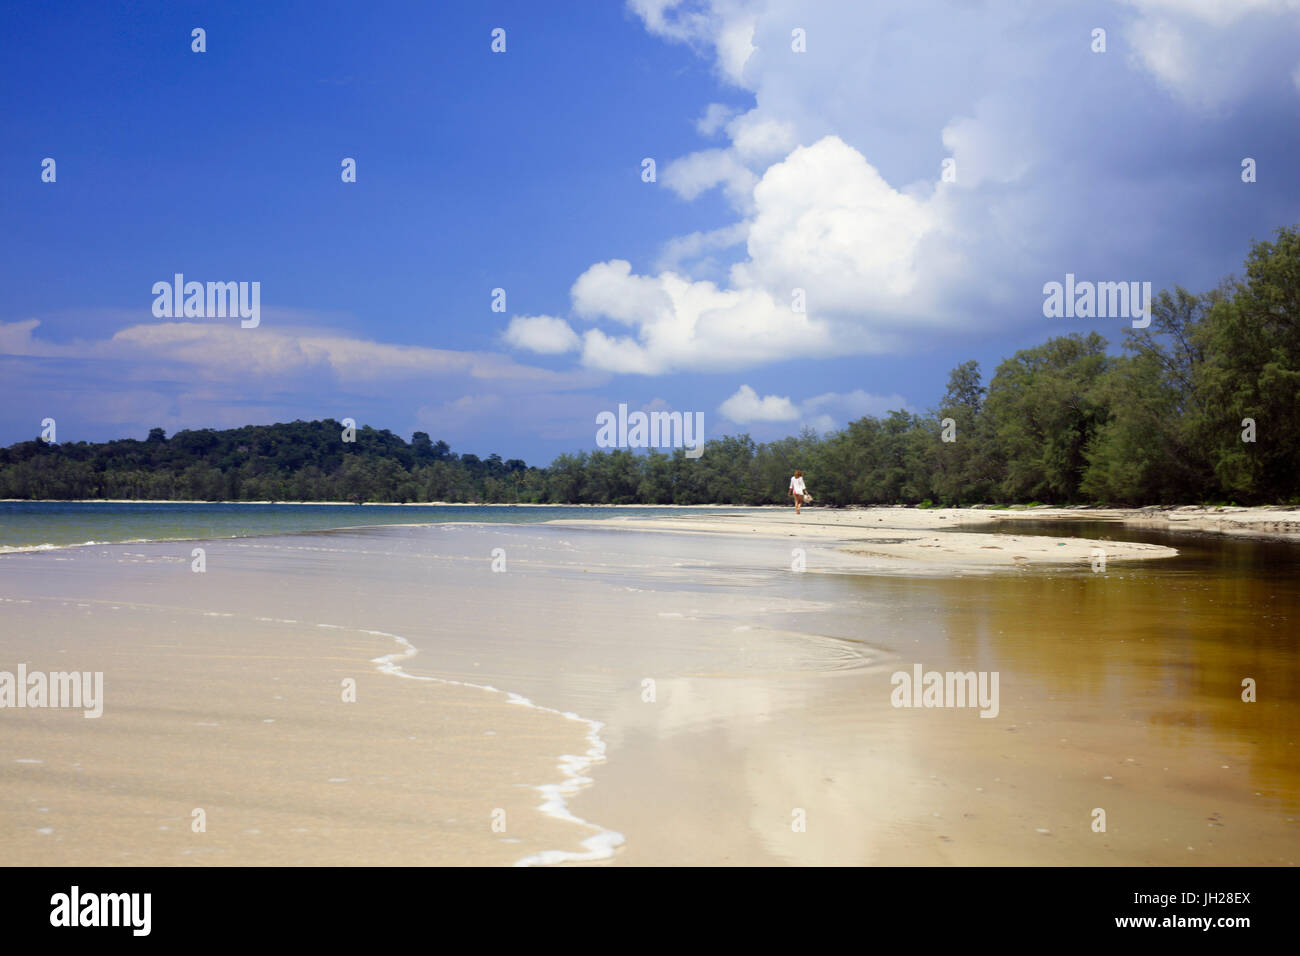 Beach in Ream National Park, Sihanoukville, Cambodia, Indochina, Southeast Asia, Asia - Stock Image